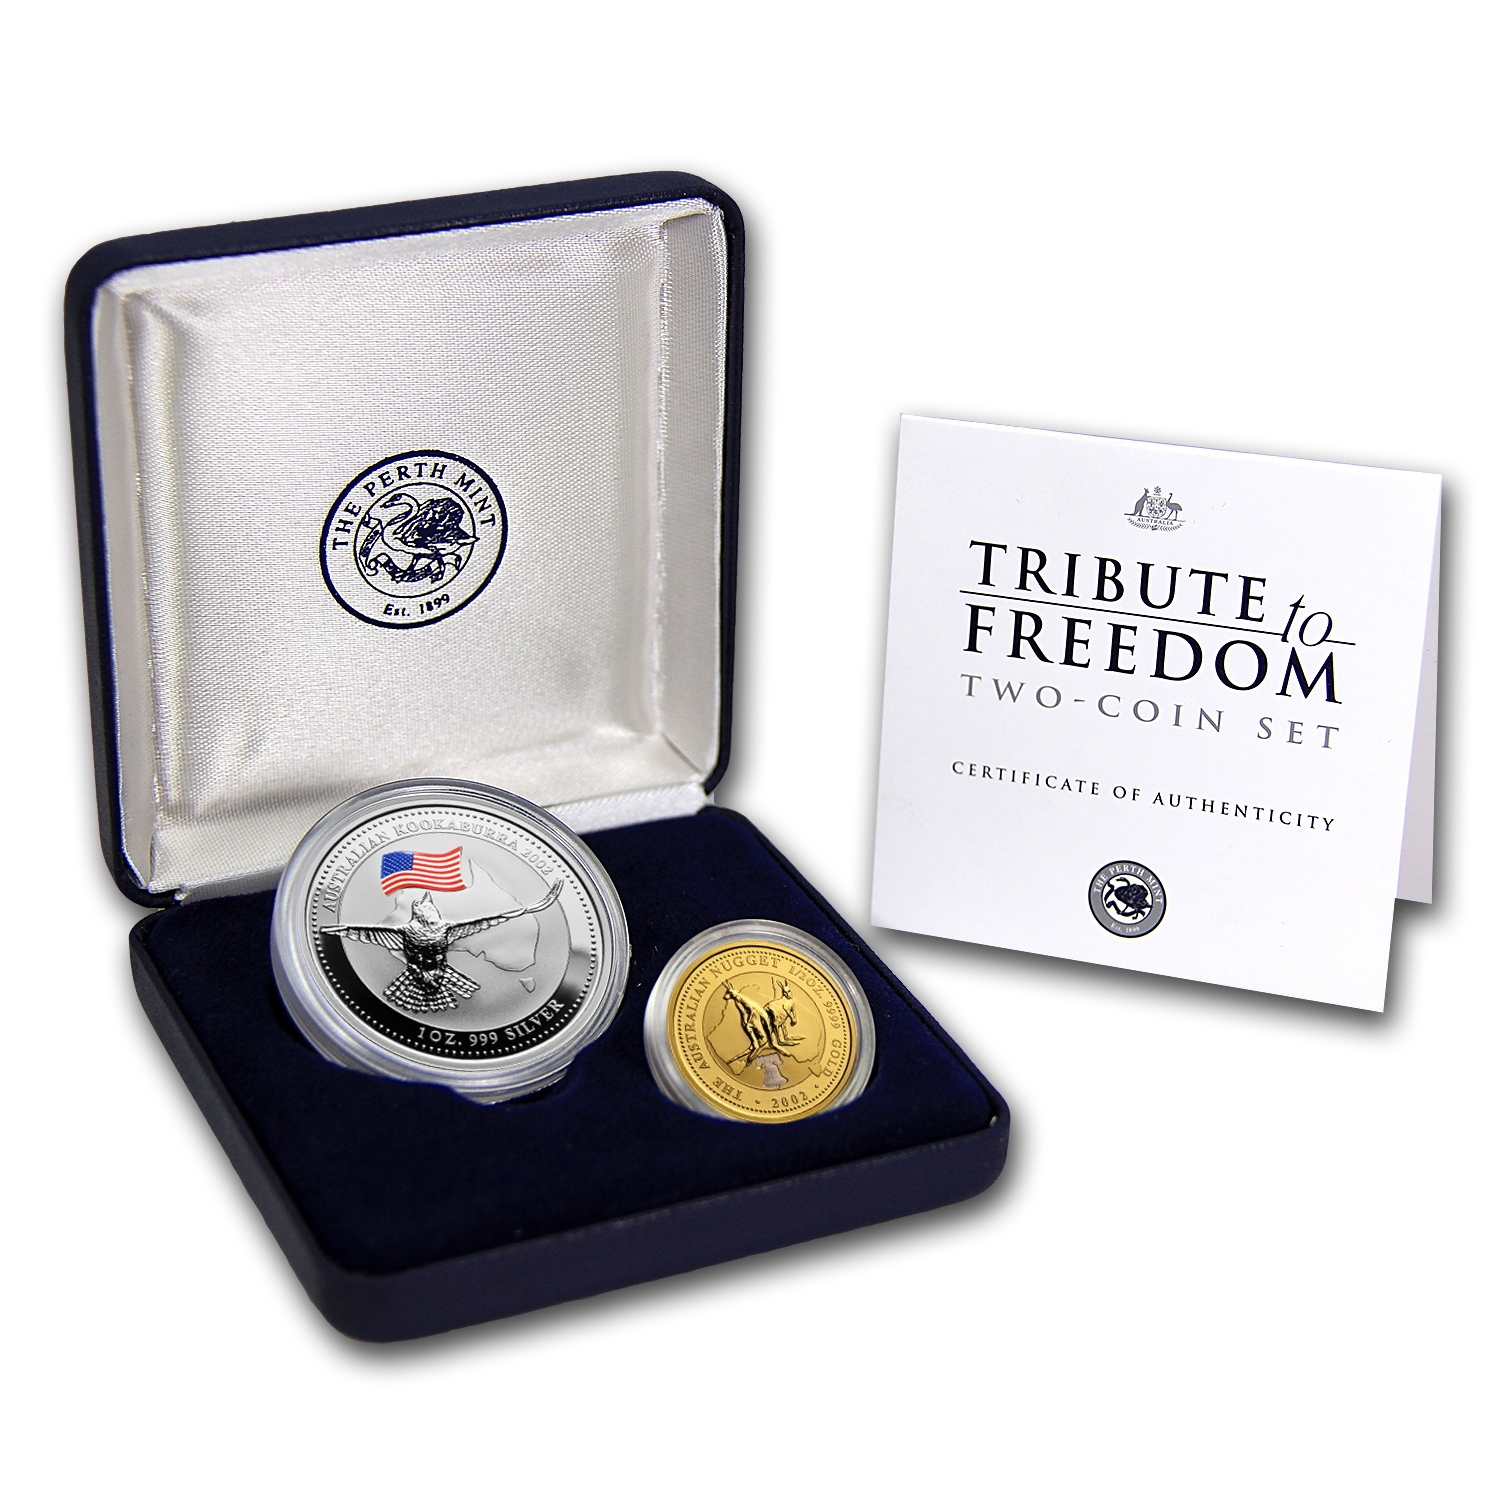 2002 Perth Mint 2-Coin Tribute to Freedom Proof Set